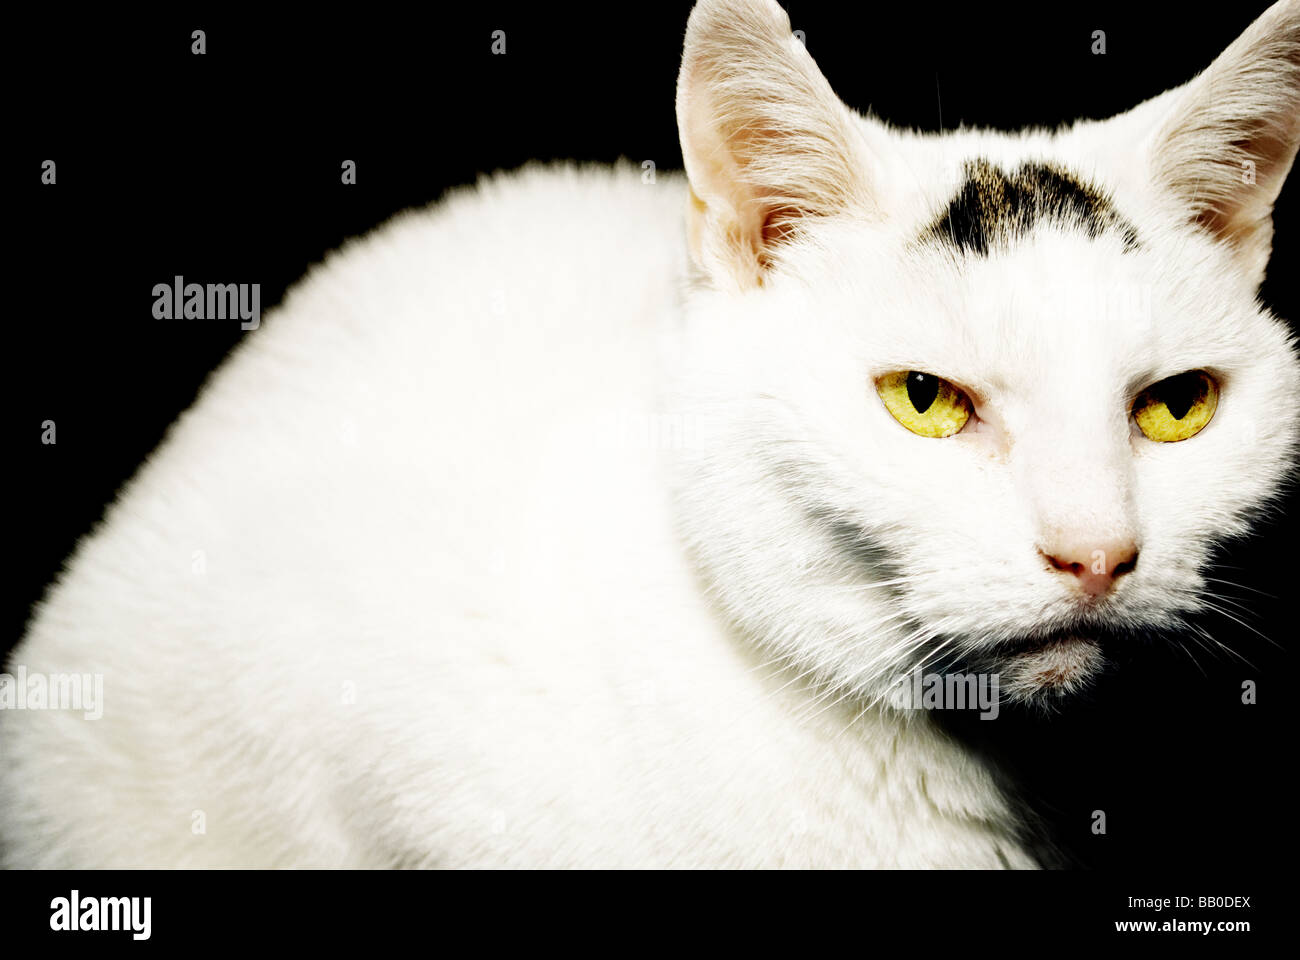 White cat with tabby marking - Stock Image